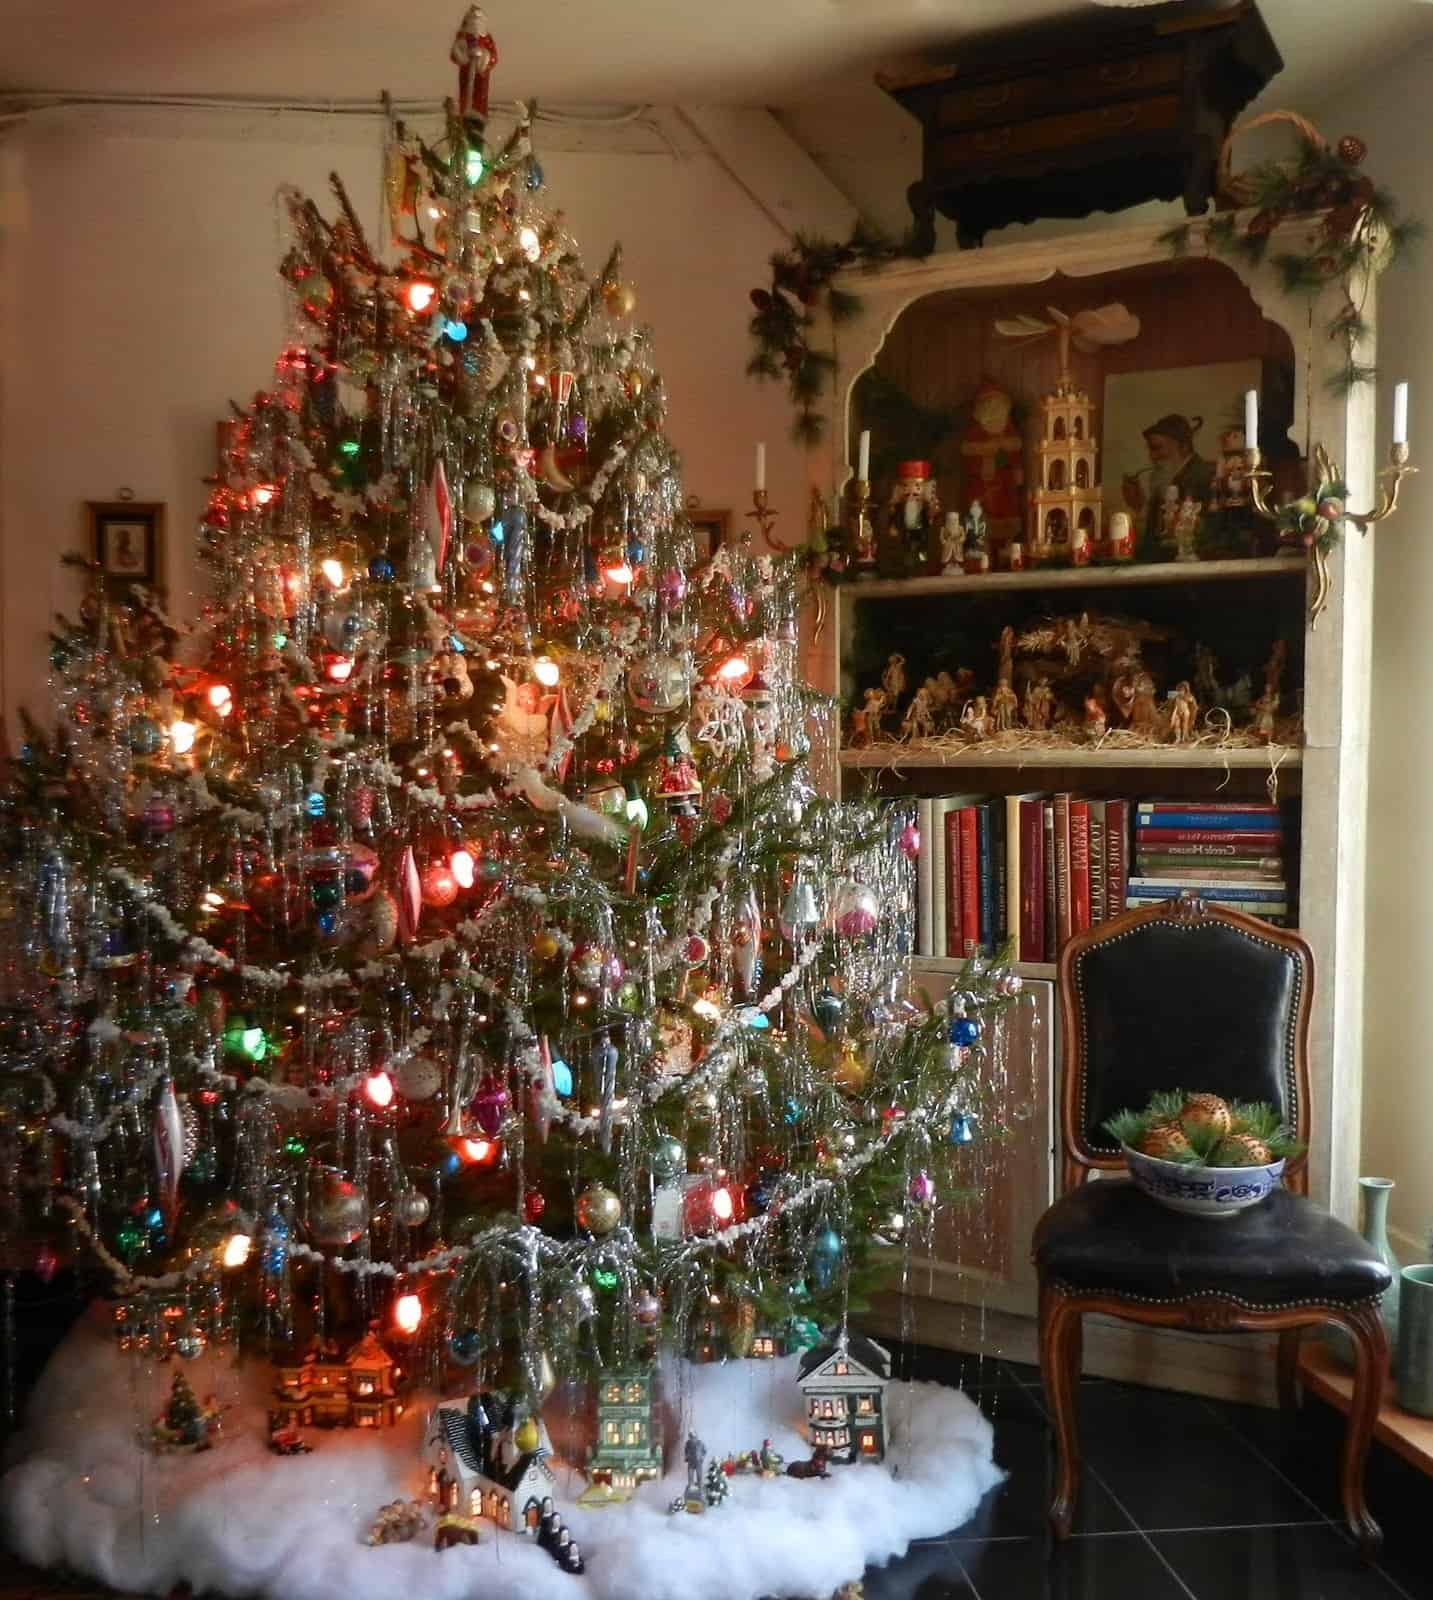 Tinsel Christmas Tree.Vintage Christmas Decorations That Are Making A Huge Comeback